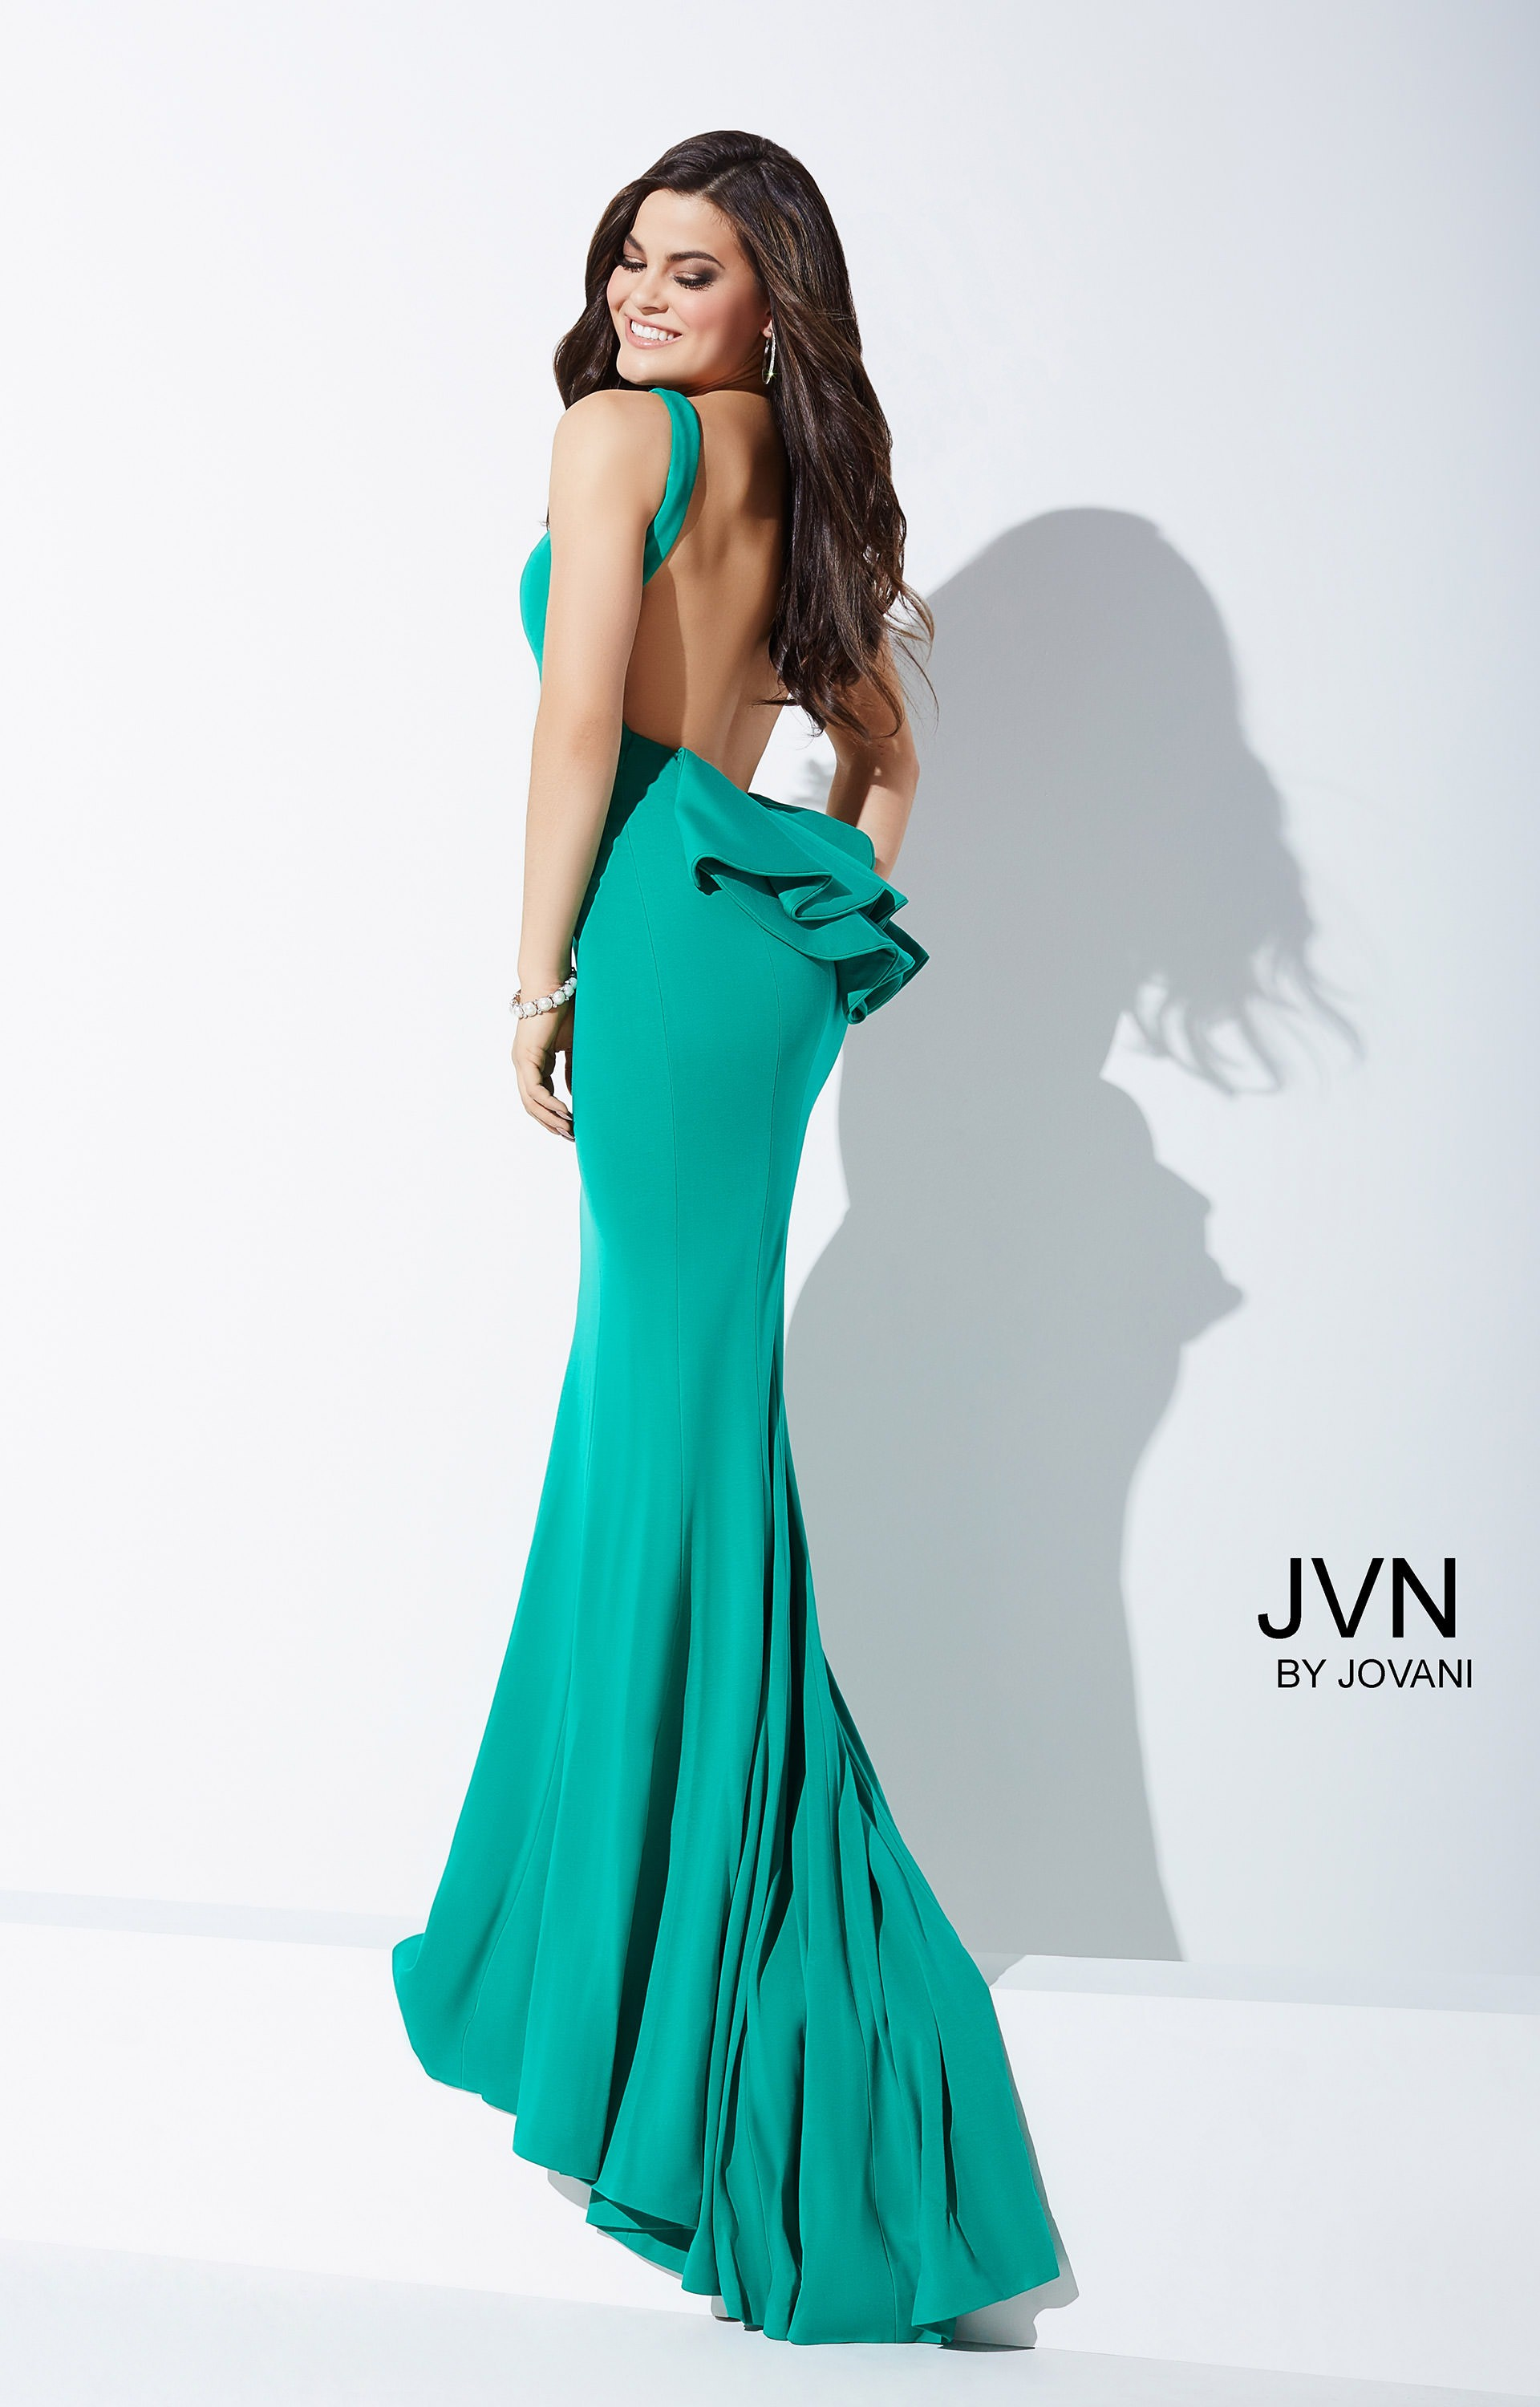 Jovani jvn32628 - Sleeveless Fitted Jersey with Open Back and ...